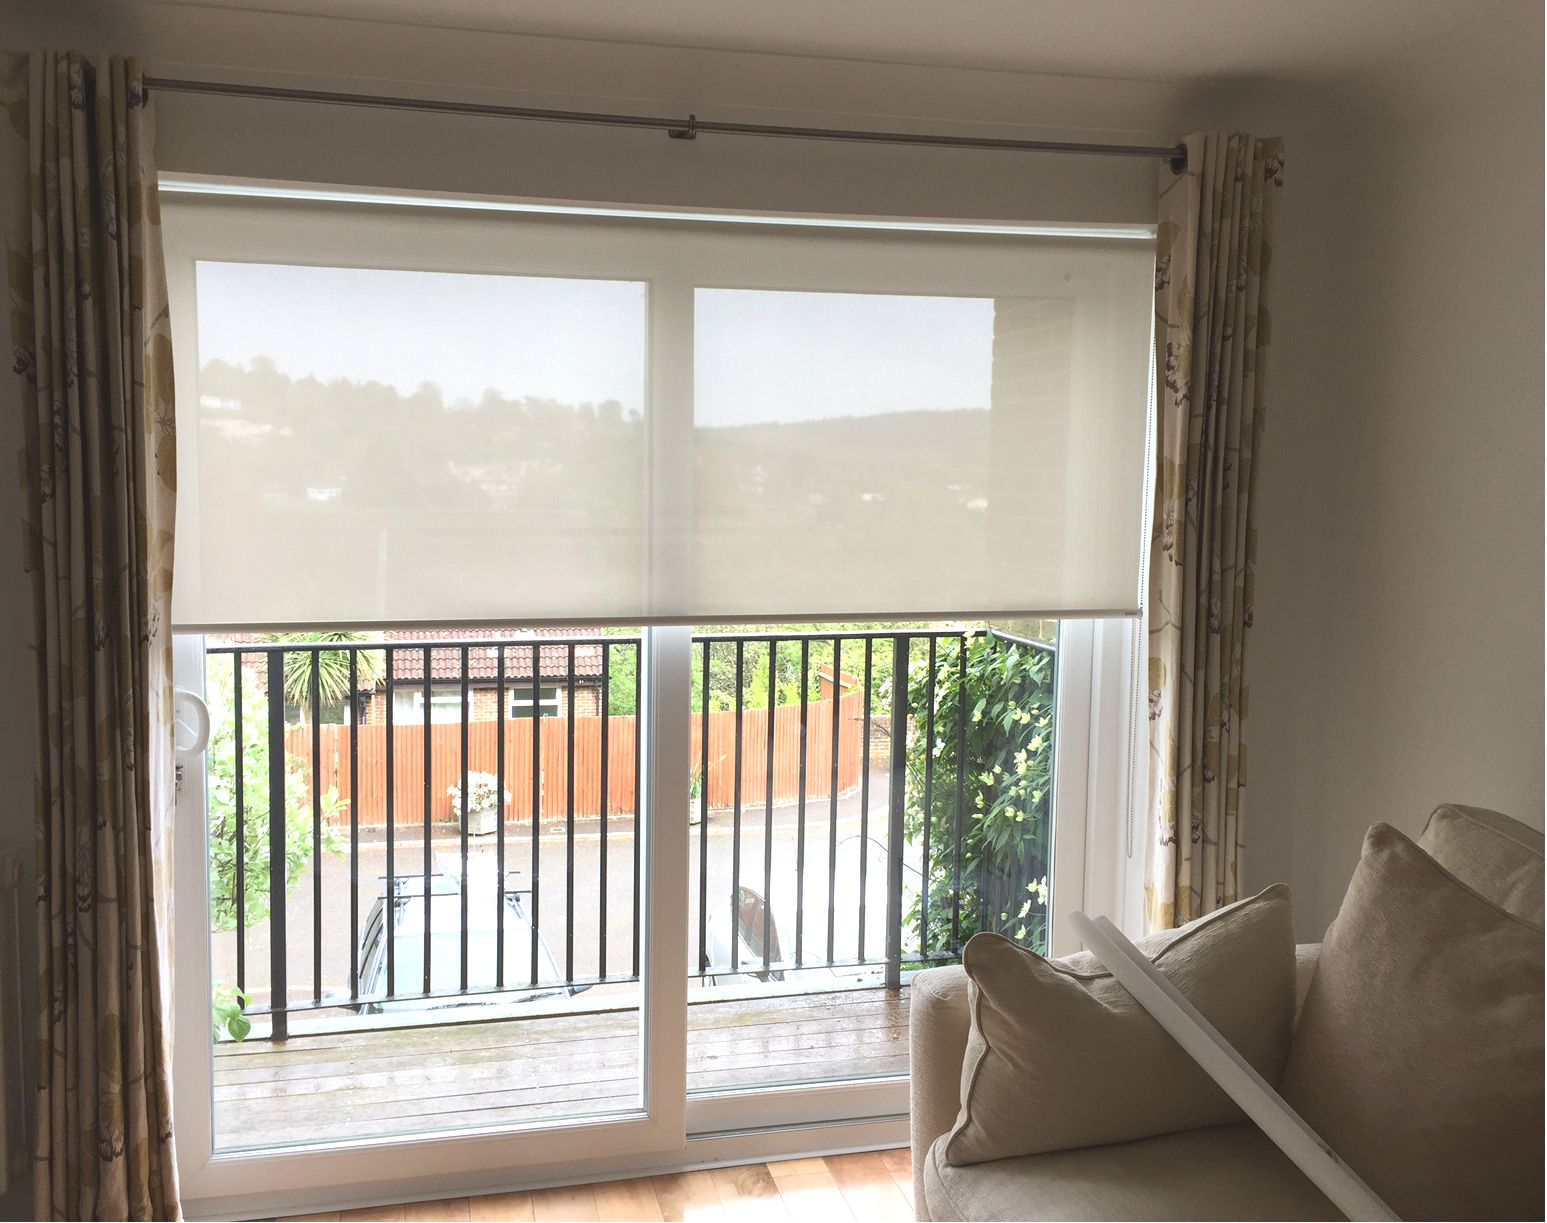 Sunscreen Roller Blinds We Installed To Window And Sliding